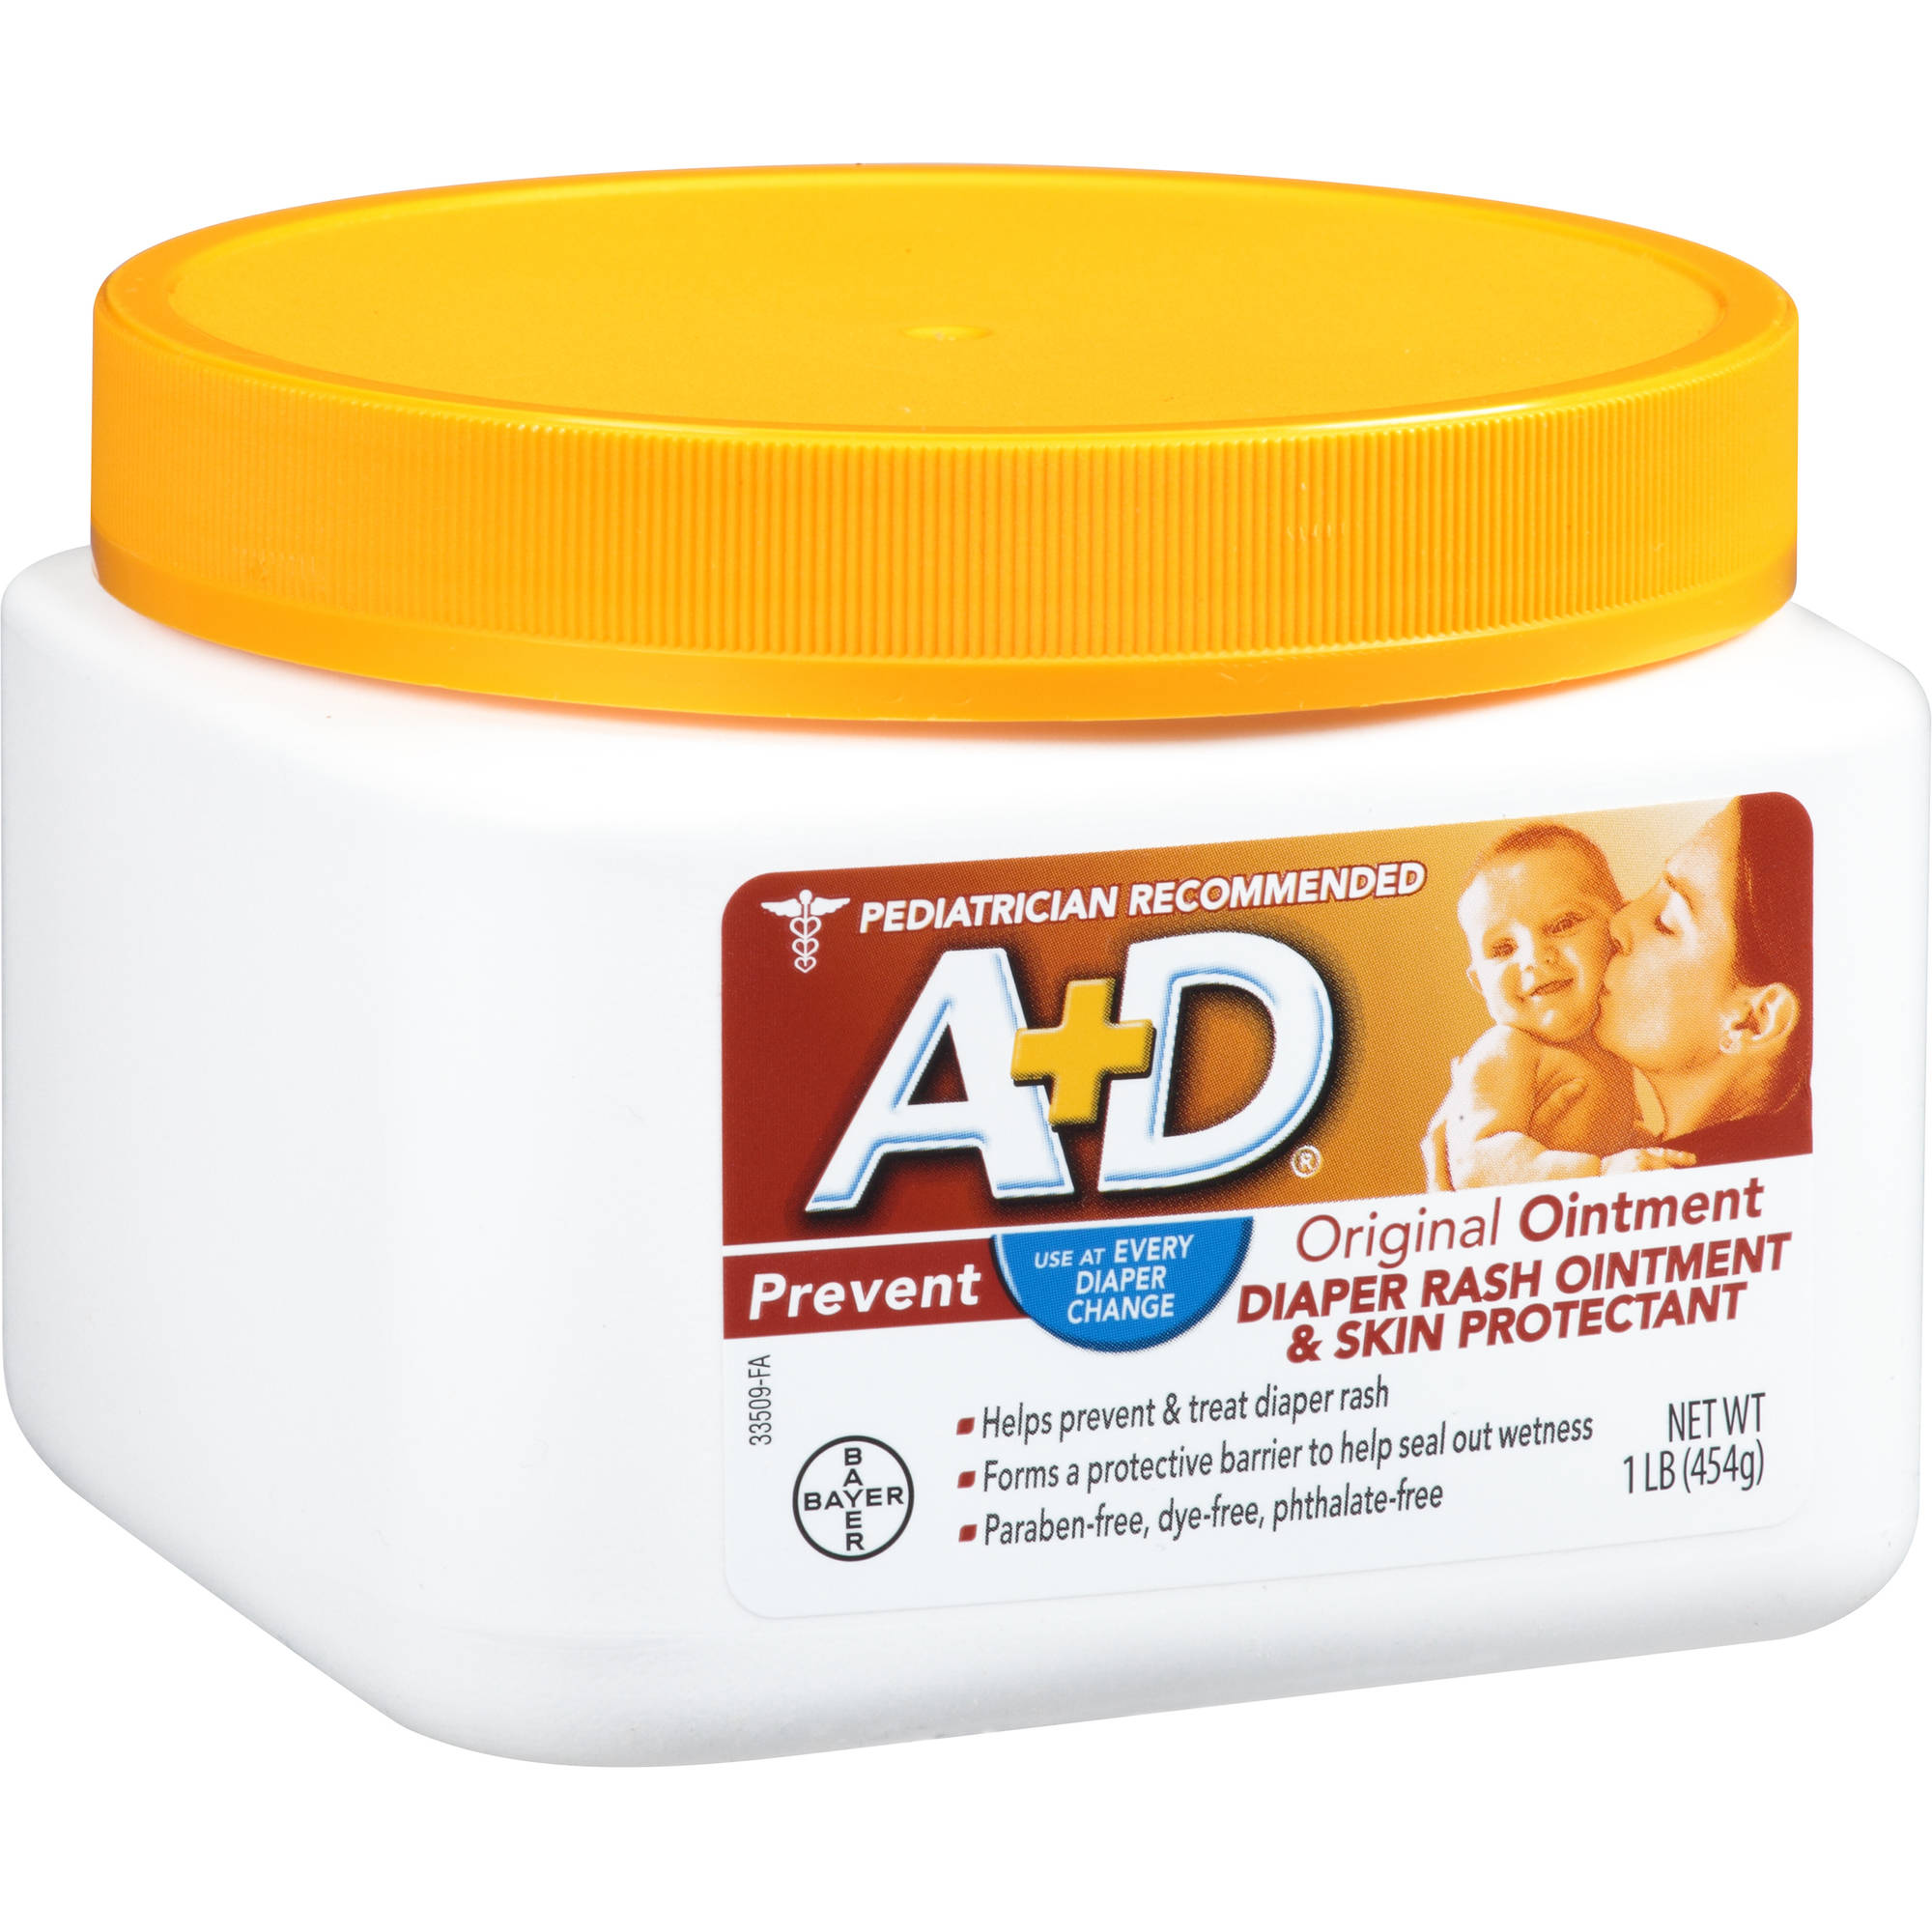 A+D Original Diaper Rash Ointment & Skin Protectant, 16 oz